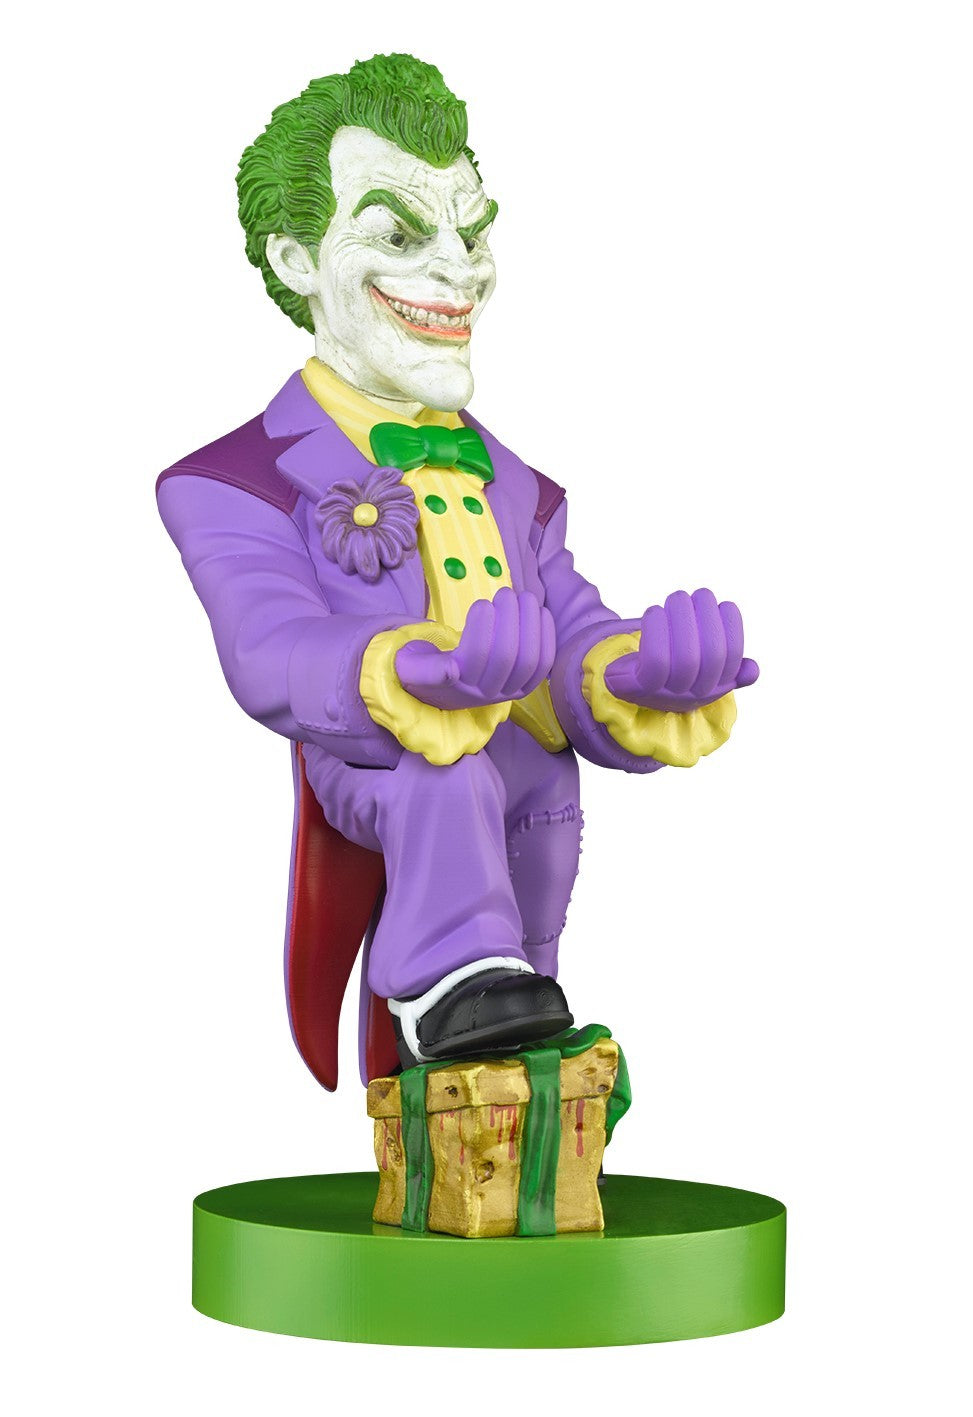 Cable Guy Controller Holder - Joker - PS4